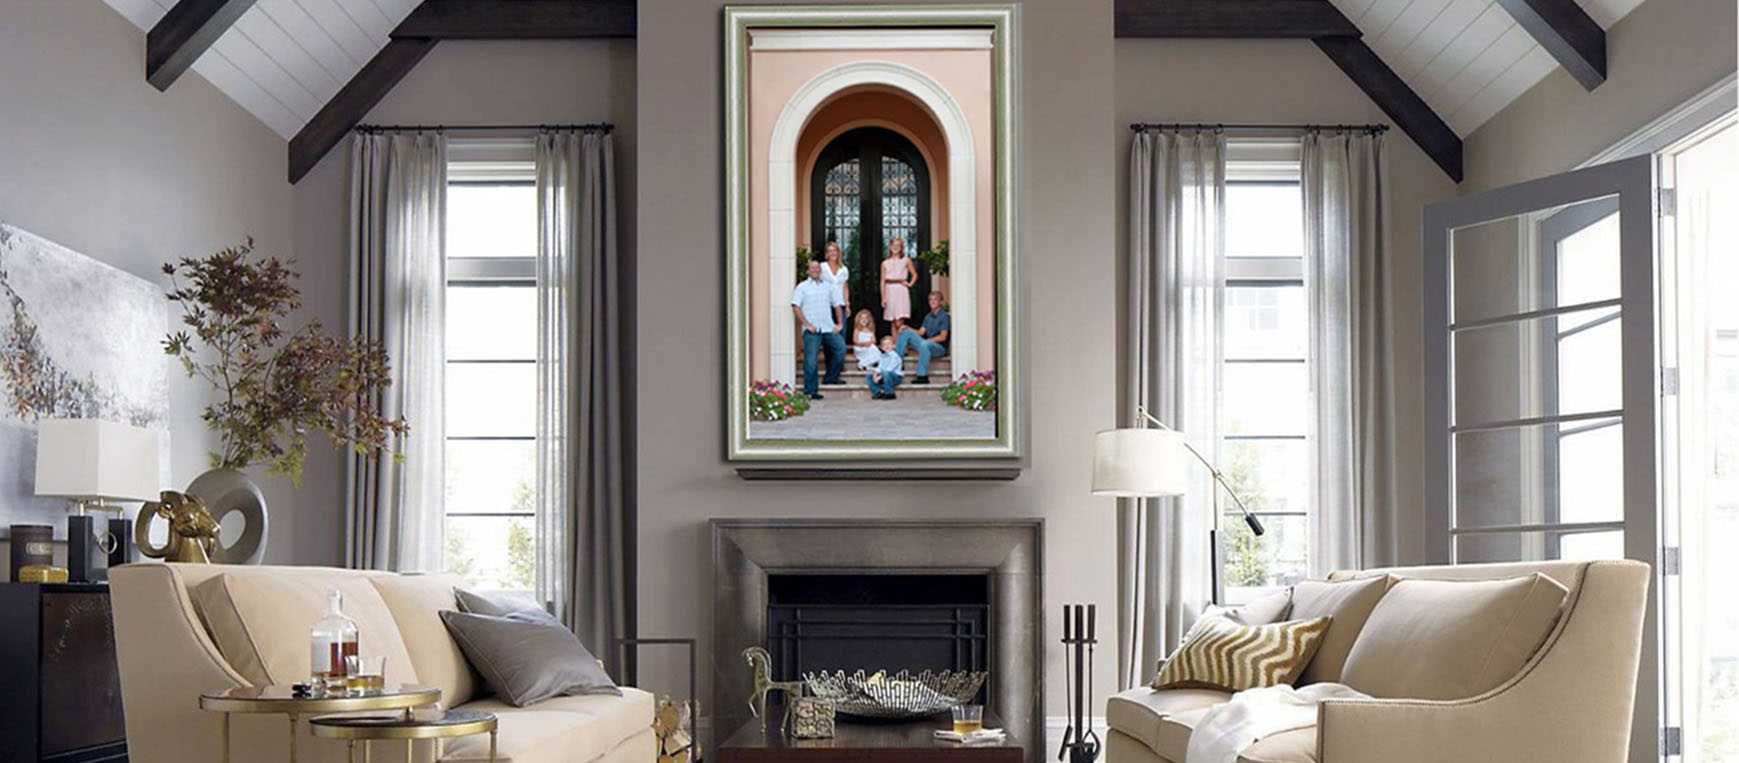 Environmental-Family-Portrait-at-the-home-Cruz-Portrait-Design